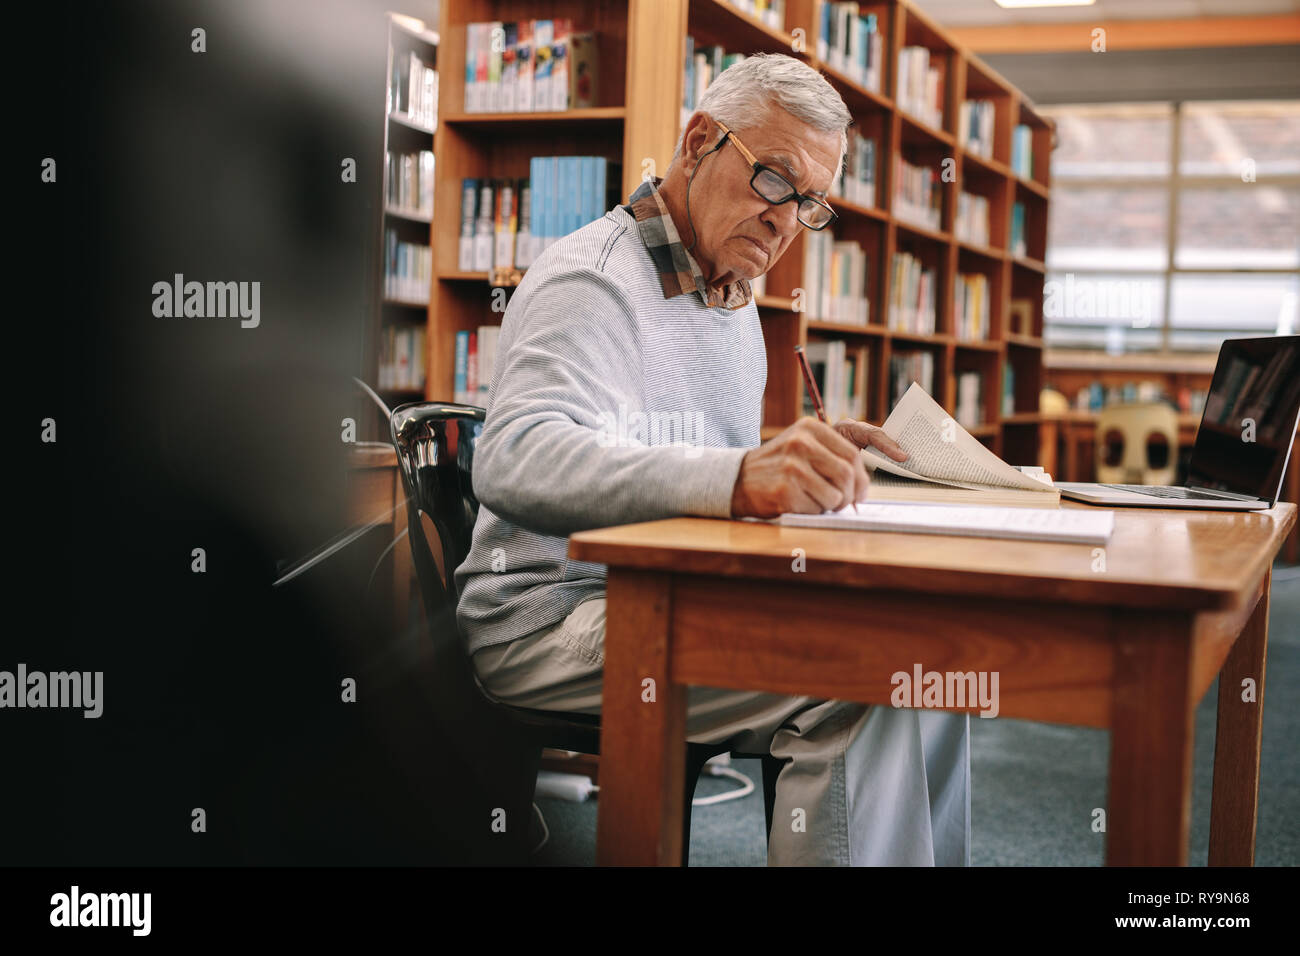 Senior man studying in classroom. Elderly man writing in a book sitting in classroom with a laptop in front. Stock Photo